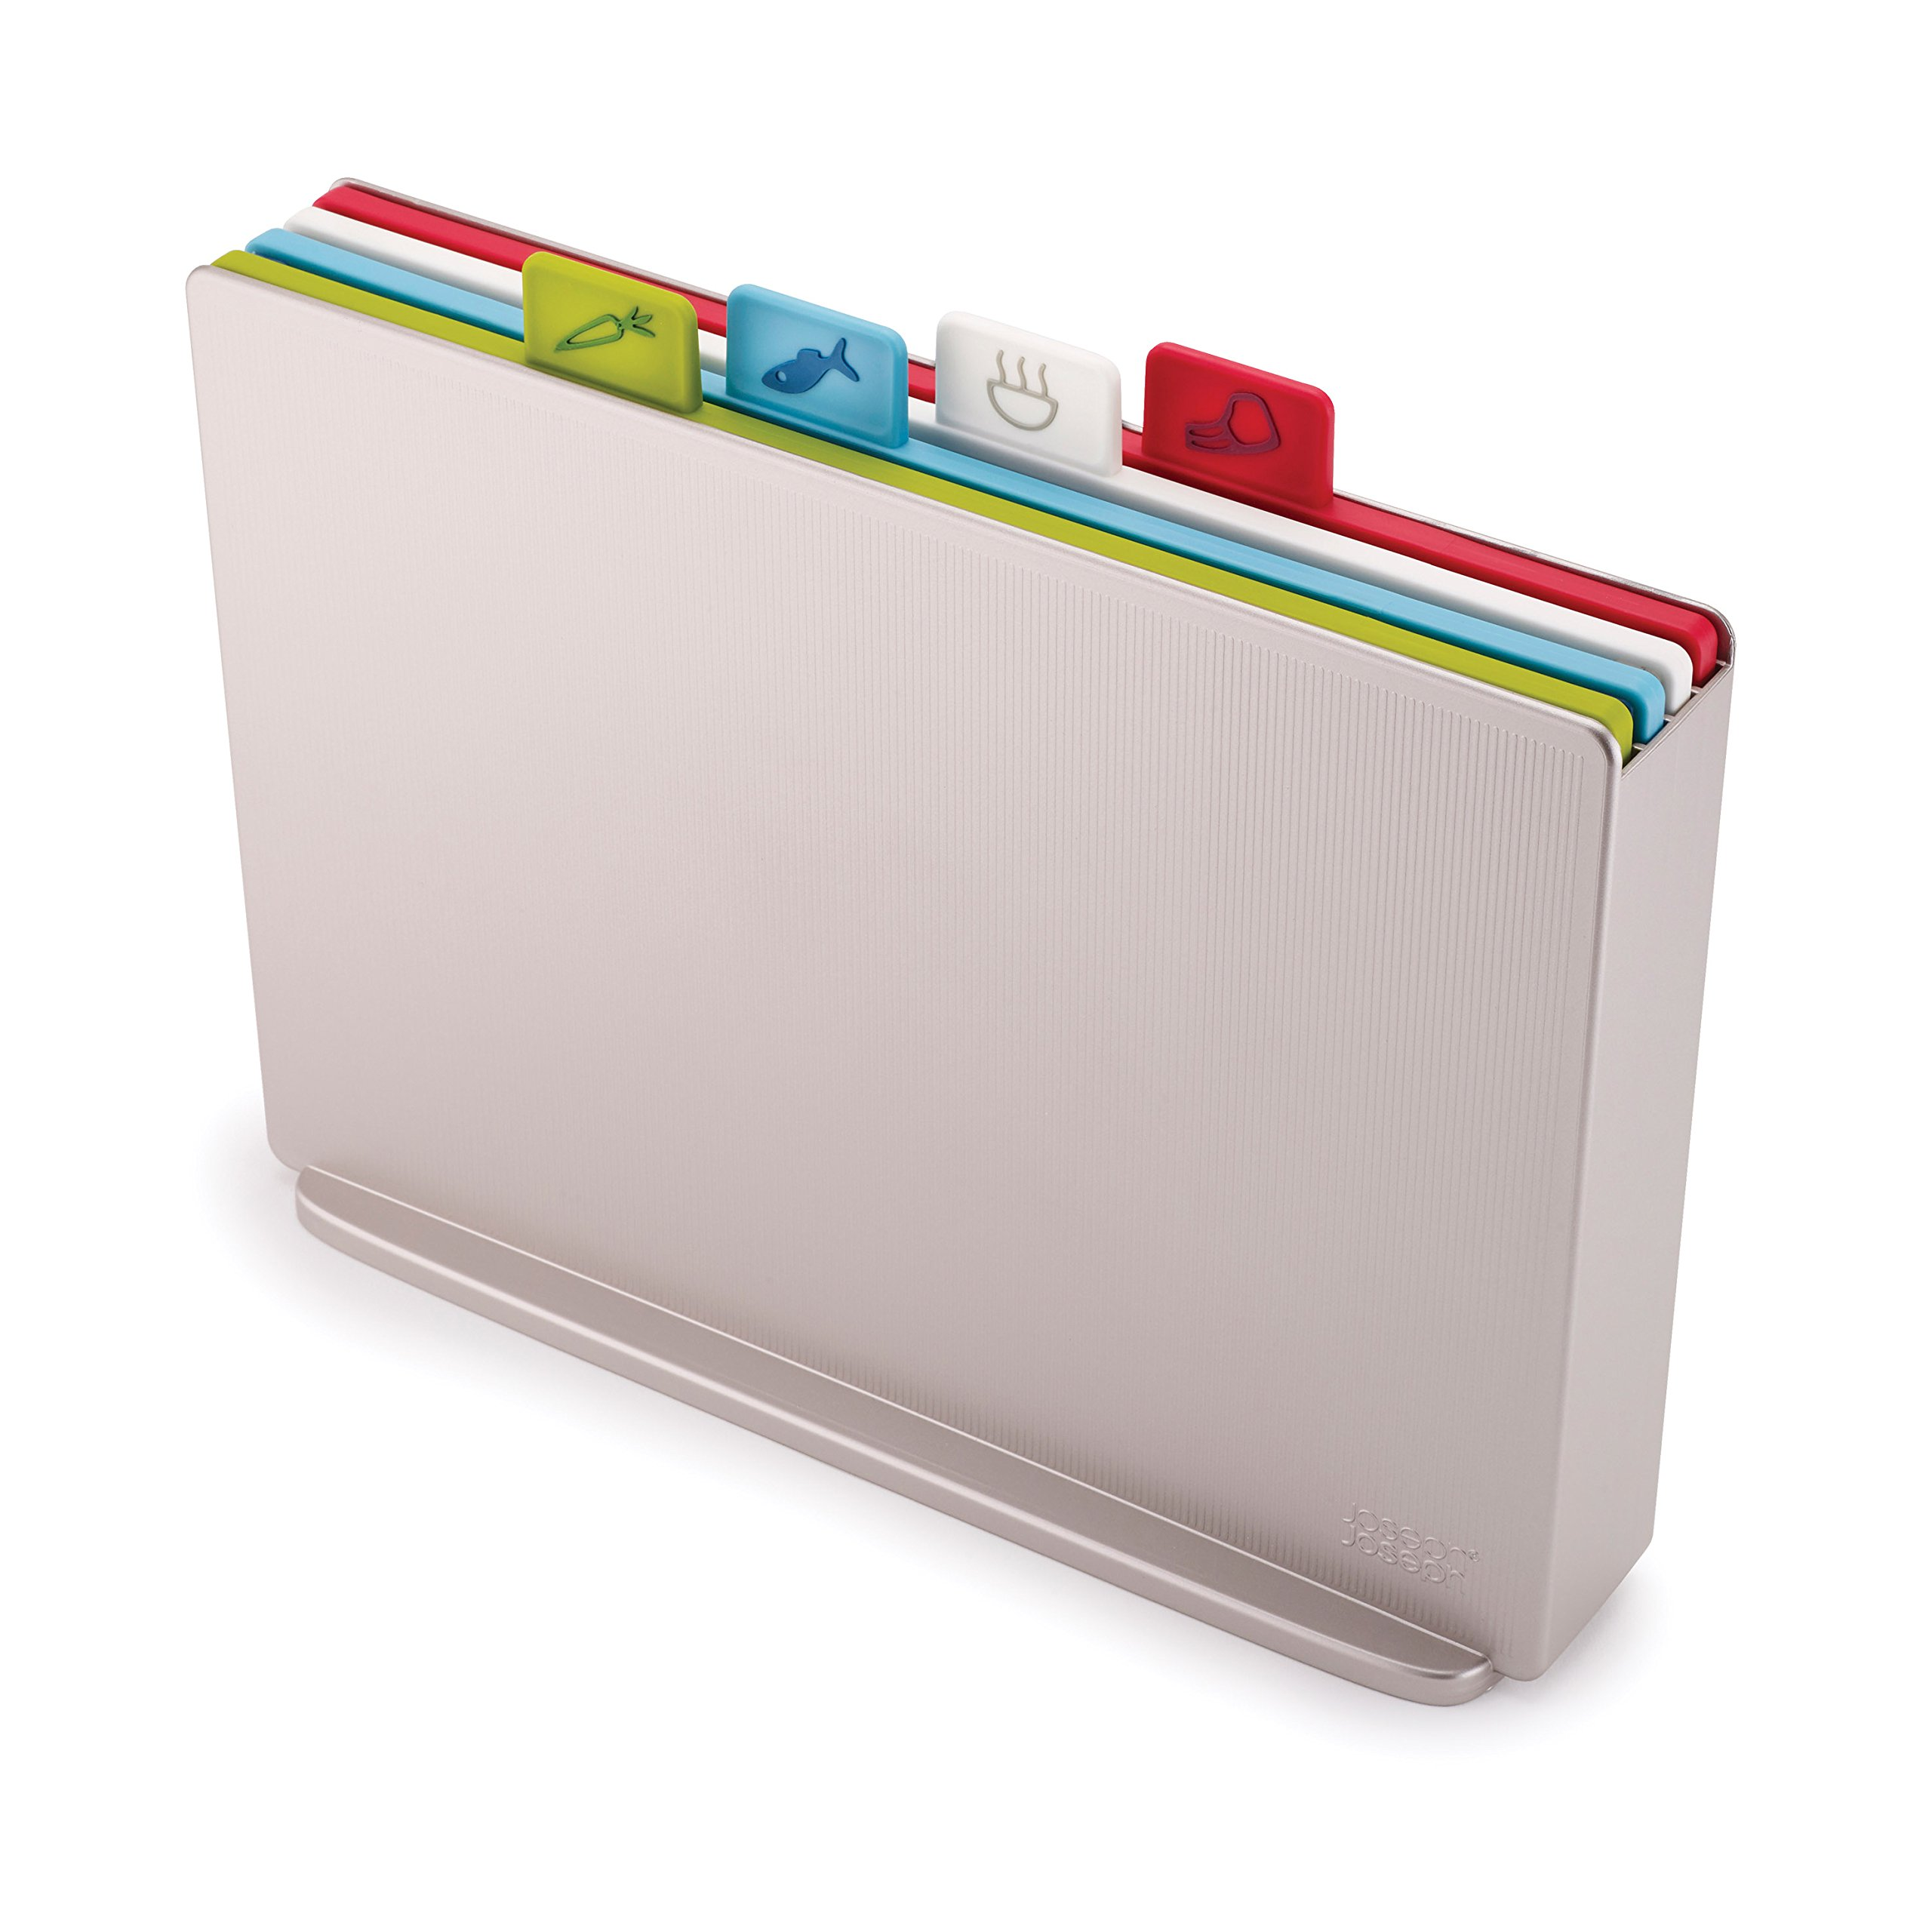 Joseph Joseph 60134 Index Plastic Cutting Board Set with Storage Case Color-Coded Dishwasher-Safe Non-Slip, Large, Silver by Joseph Joseph